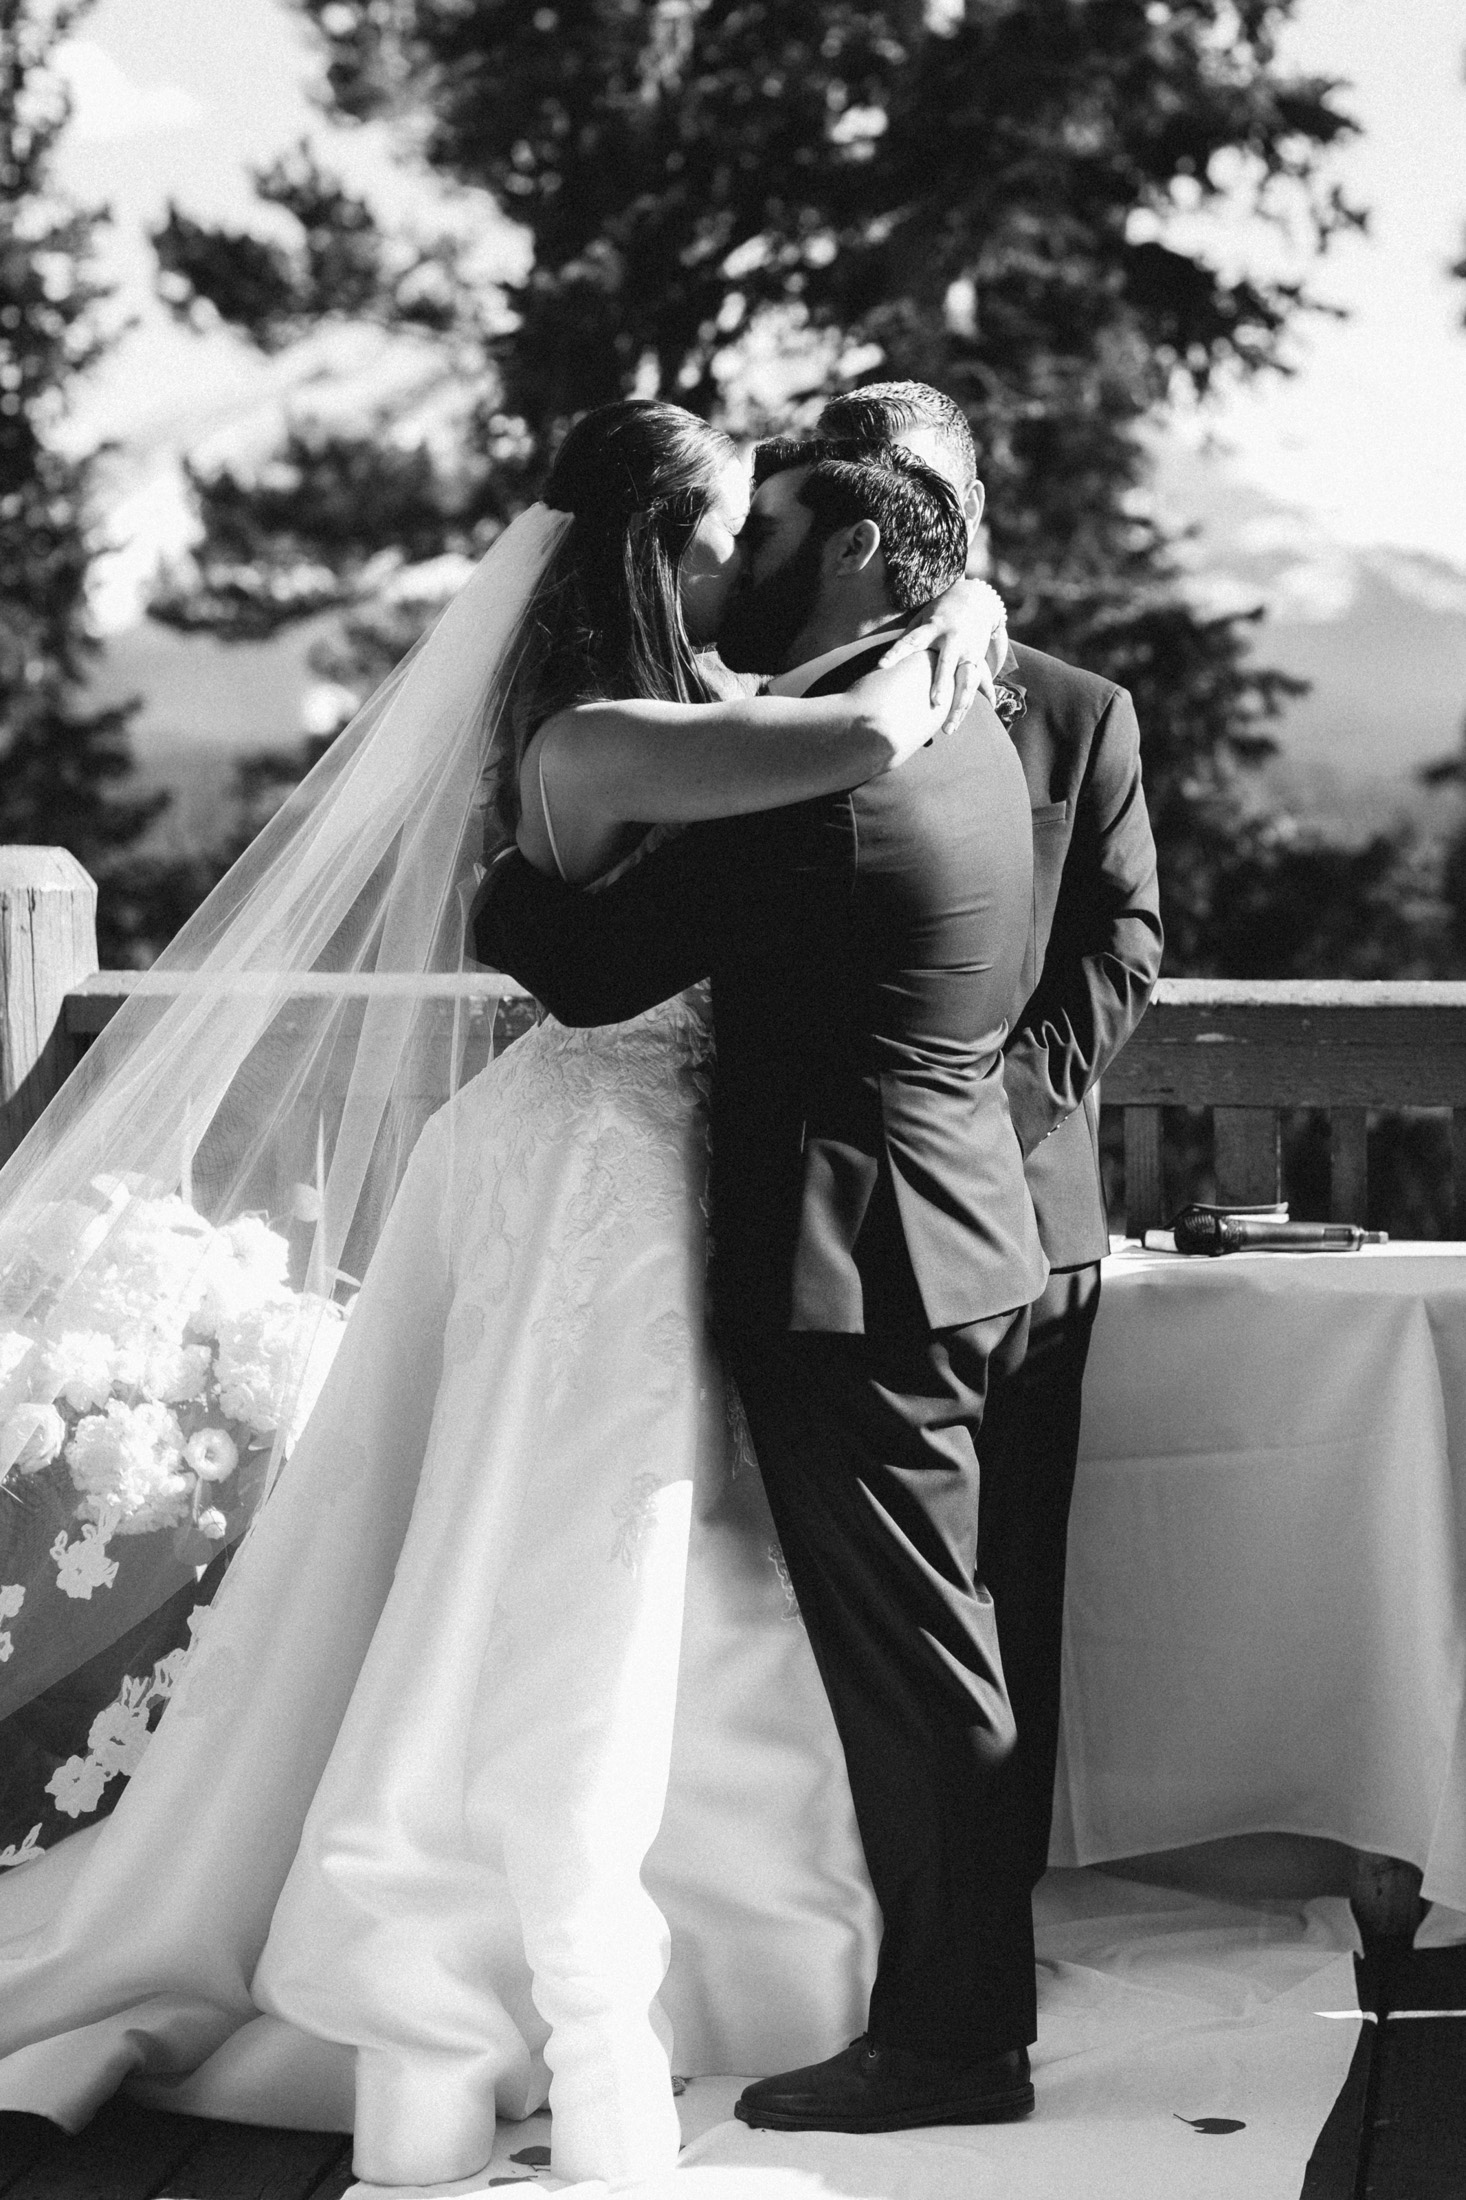 Black and white photo of bride and groom kissing at the end of the wedding ceremony.